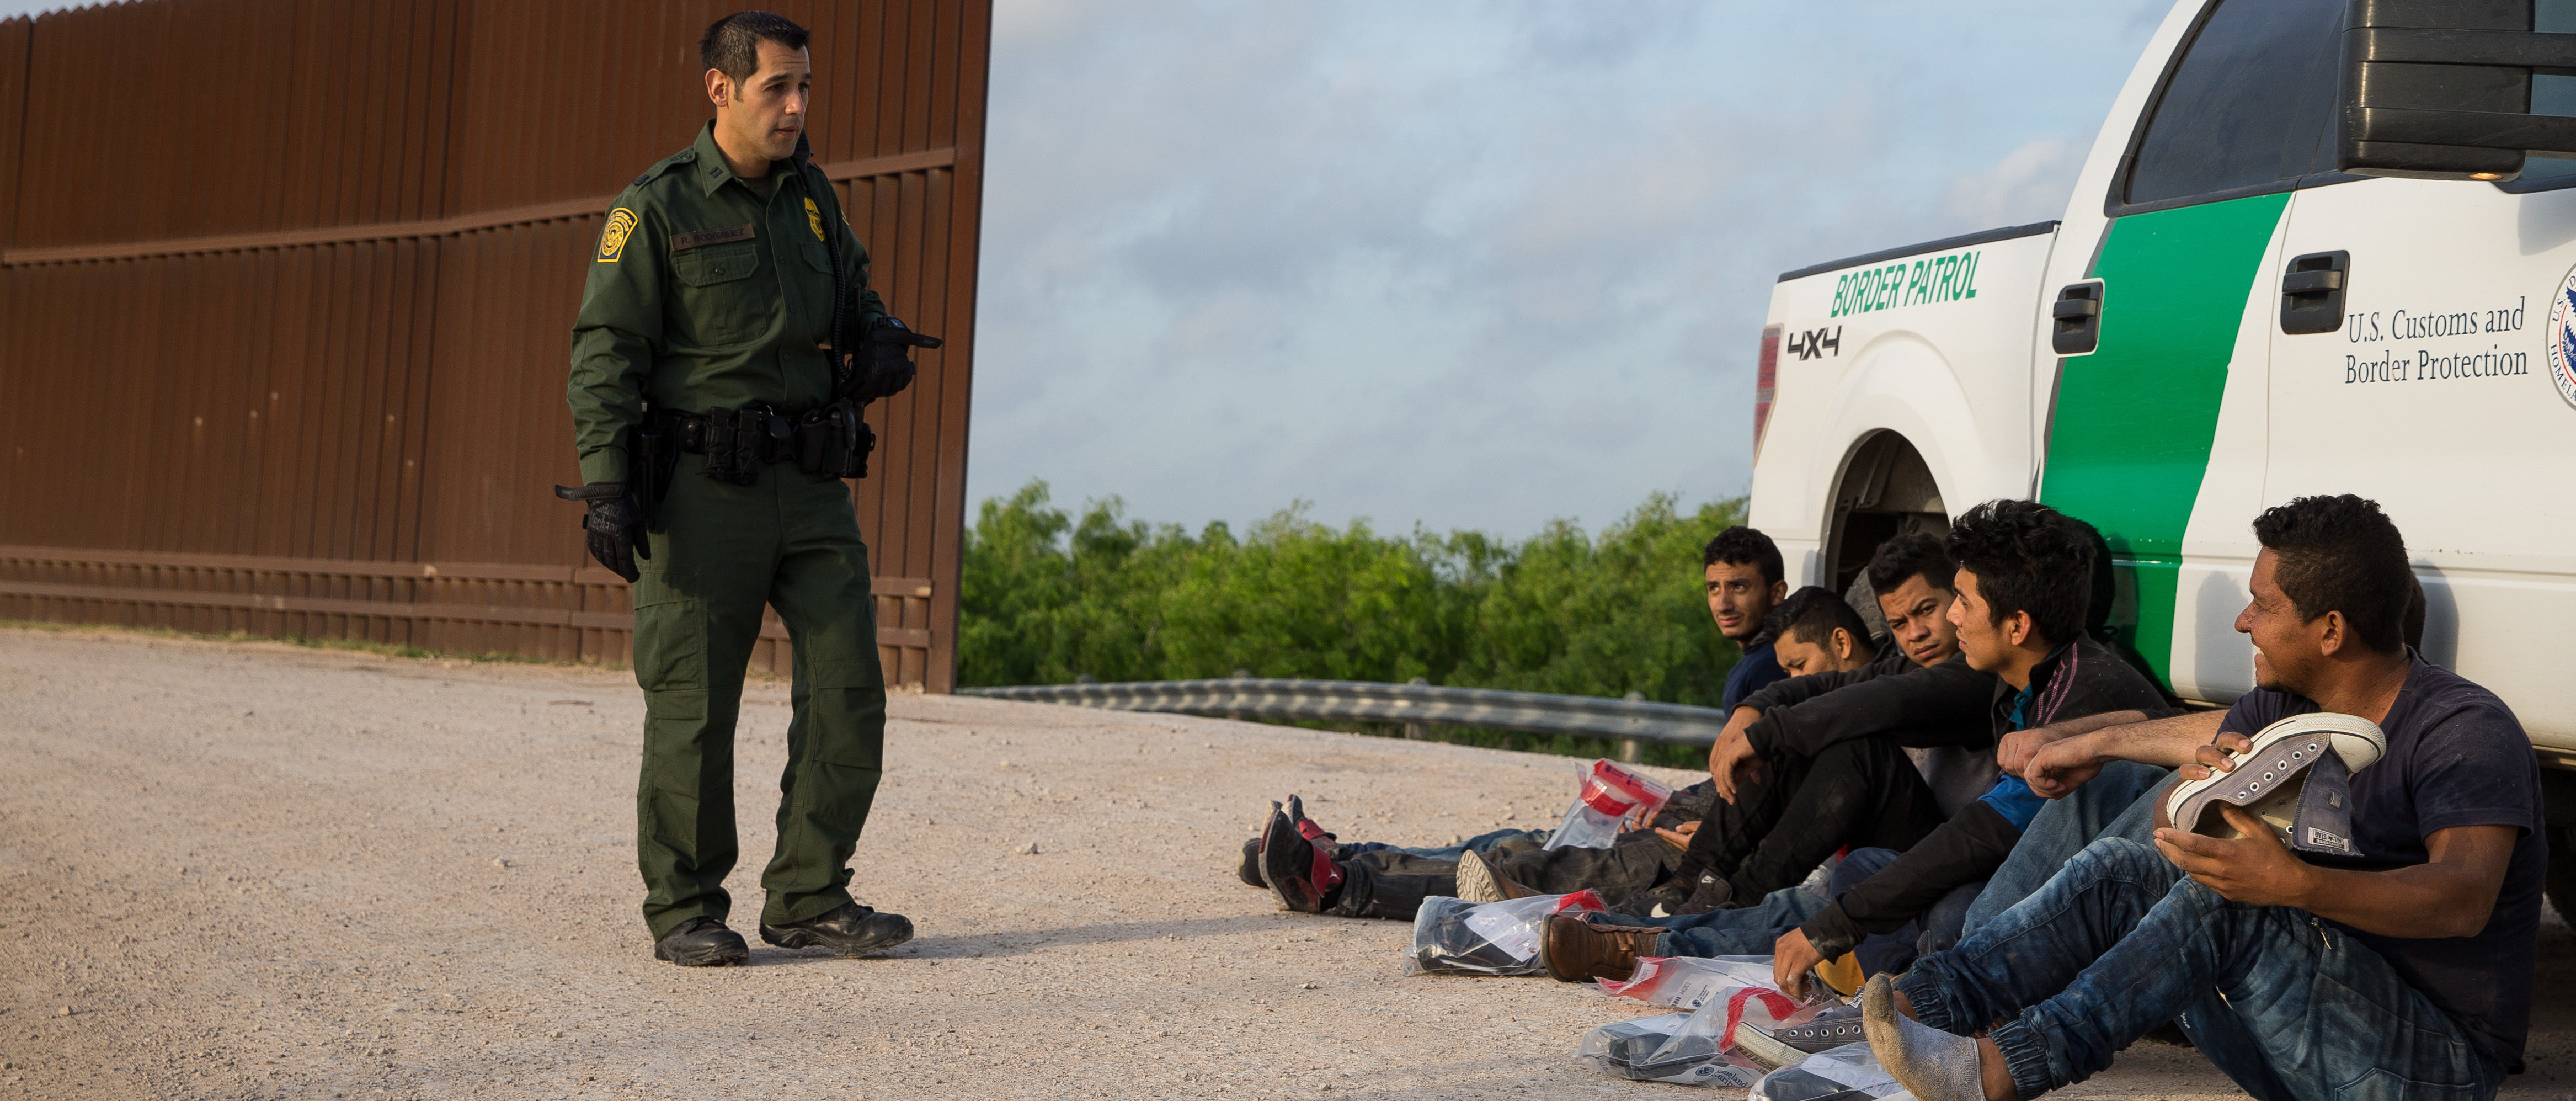 Illegal Alien Gets Five Years For Assaulting Border Guard That He Claims He Thought Was A Cow